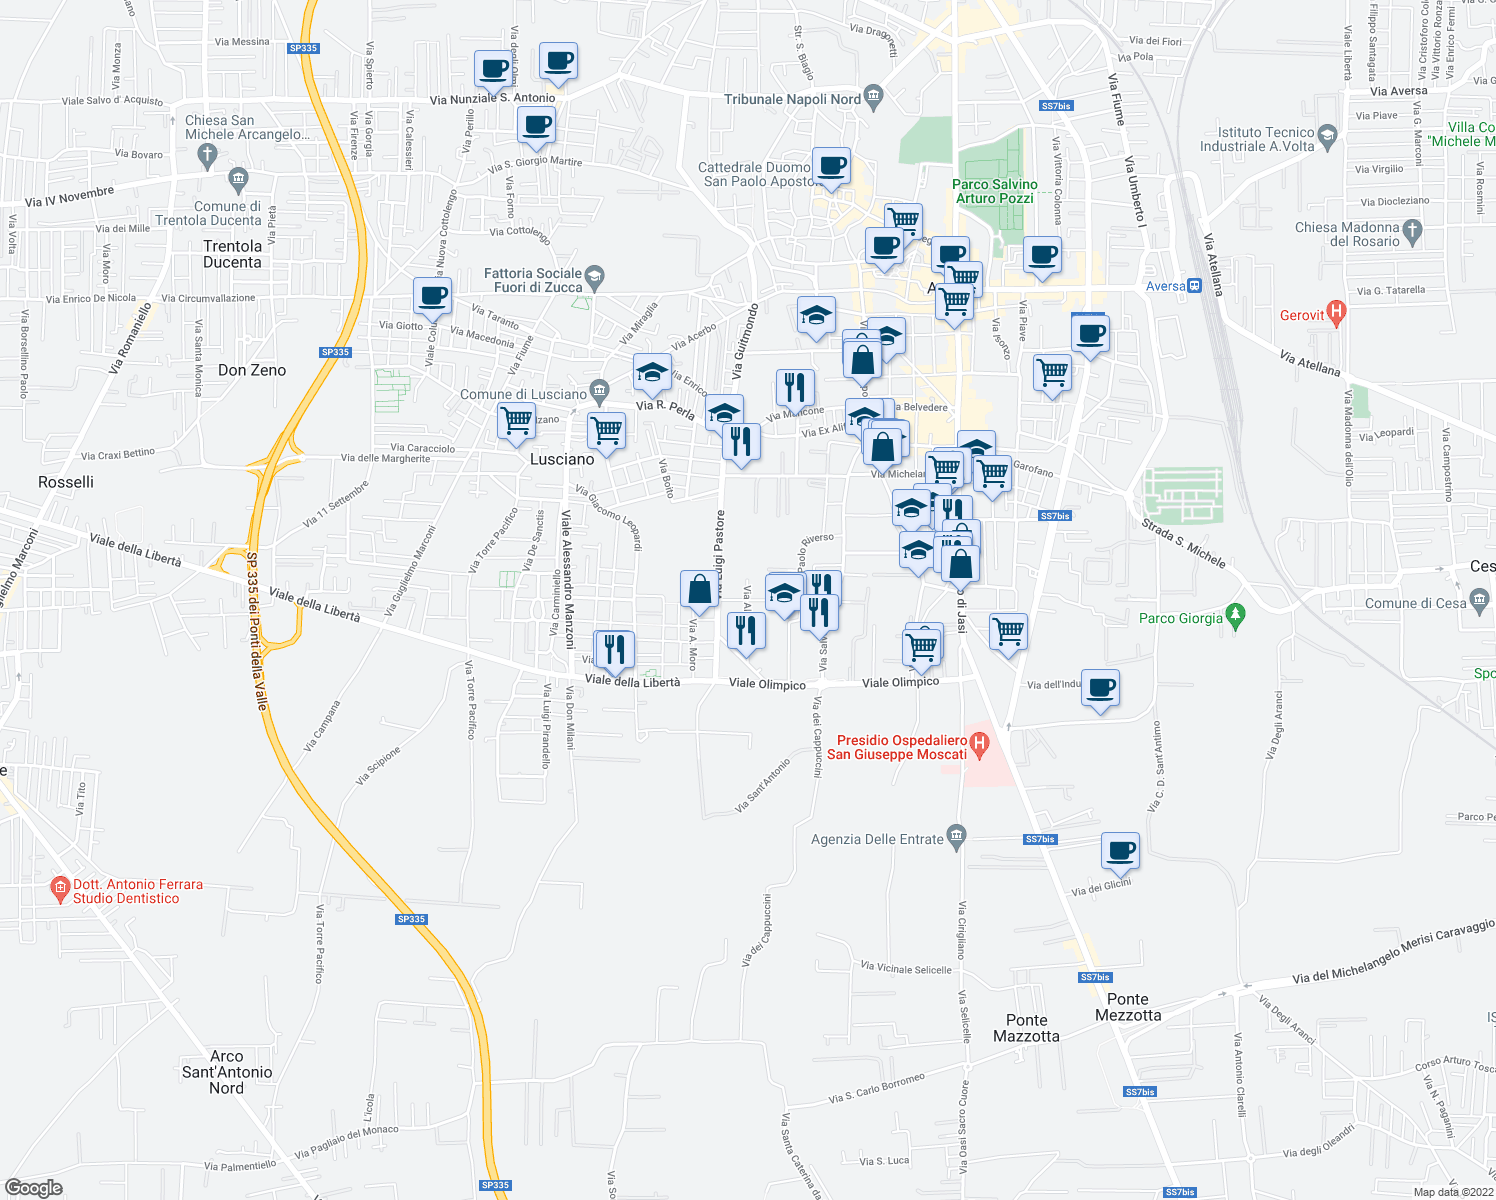 map of restaurants, bars, coffee shops, grocery stores, and more near Via Guido Rossa in Aversa